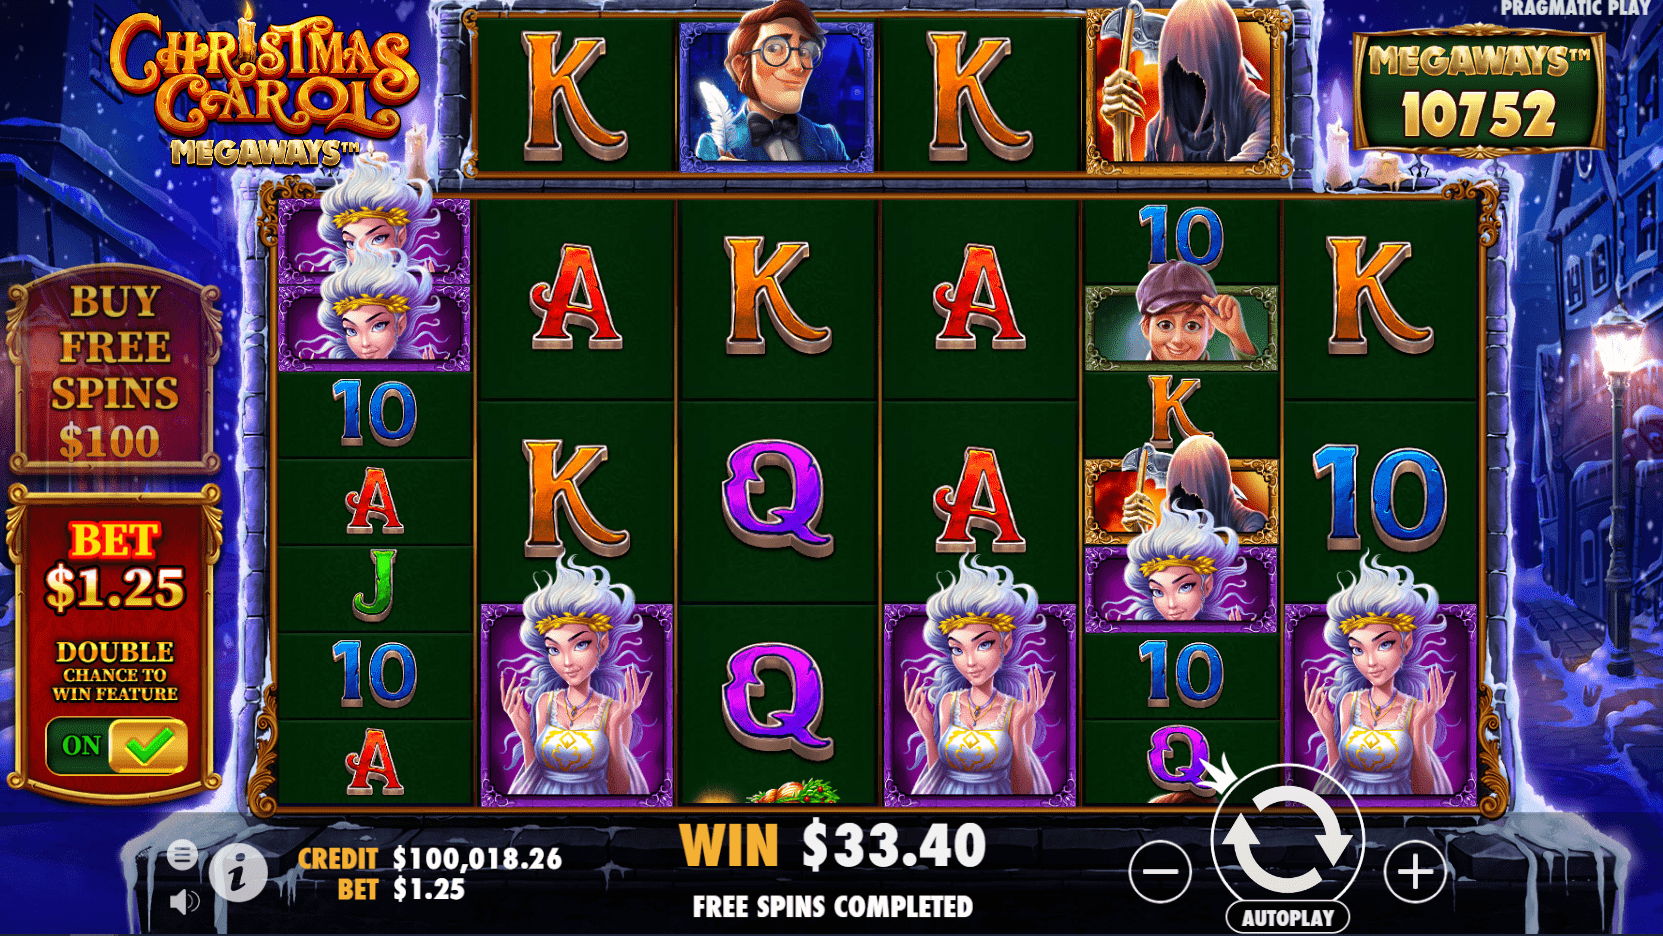 Christmas Carol Megaways video slot ante bet active